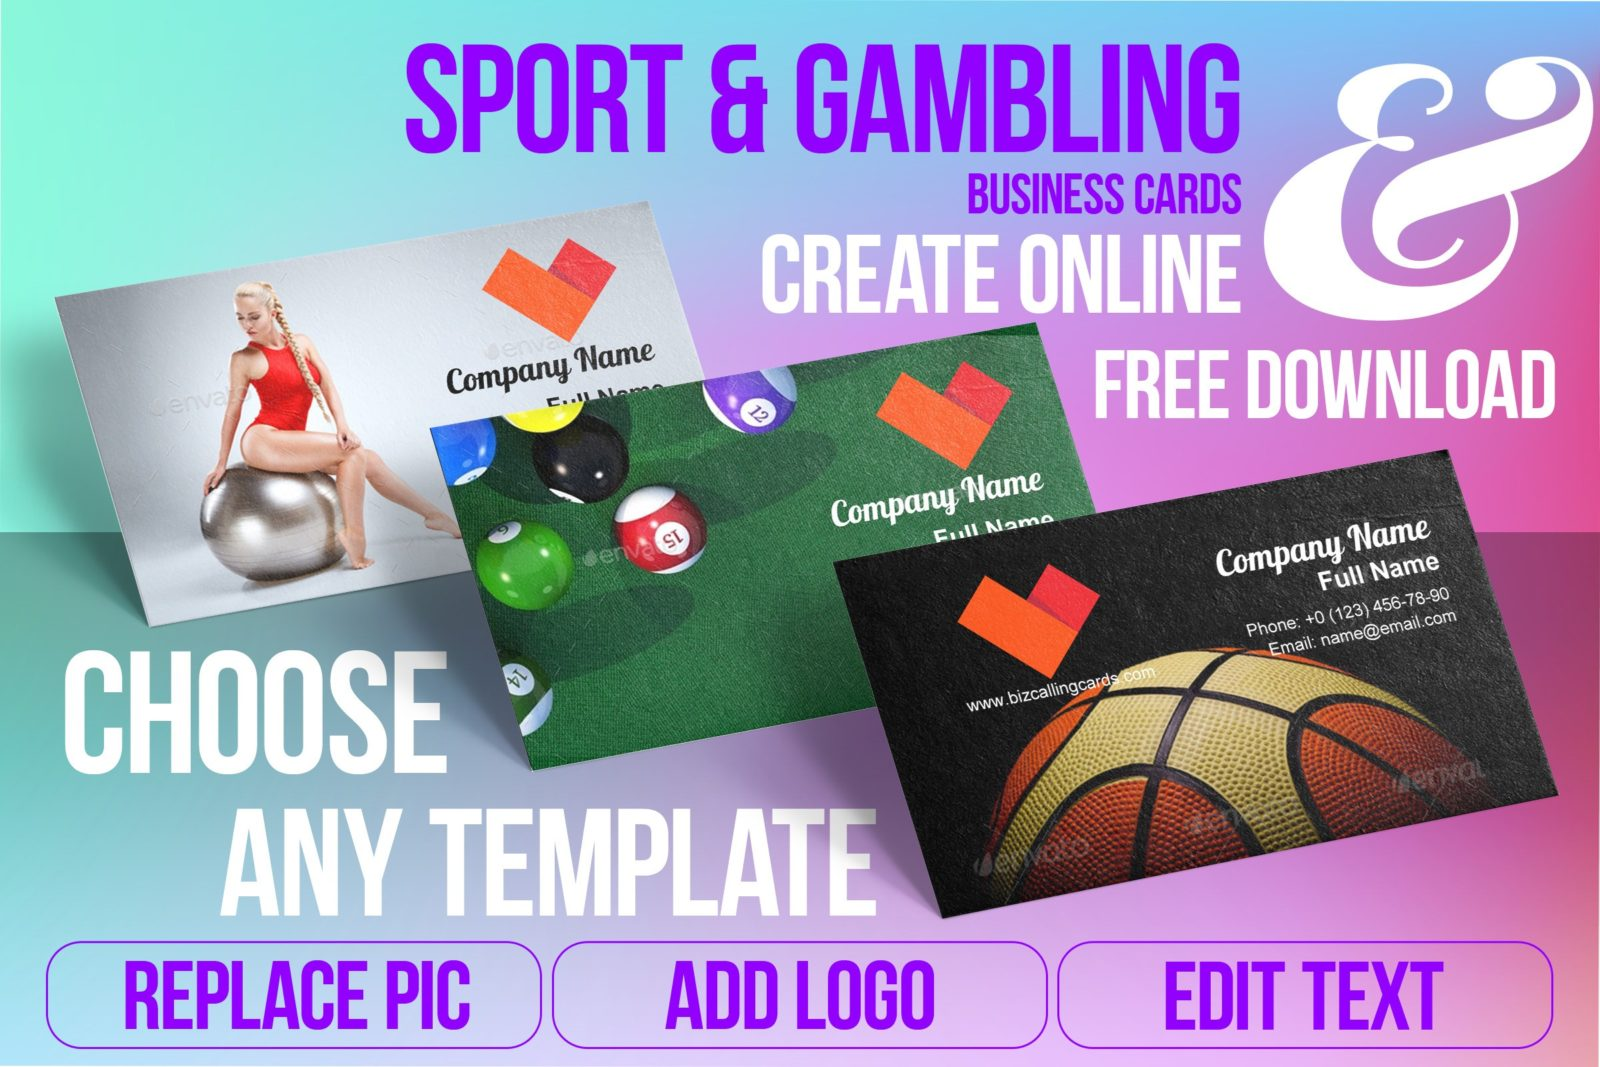 Business Card Templates For Sport & Games Free Download